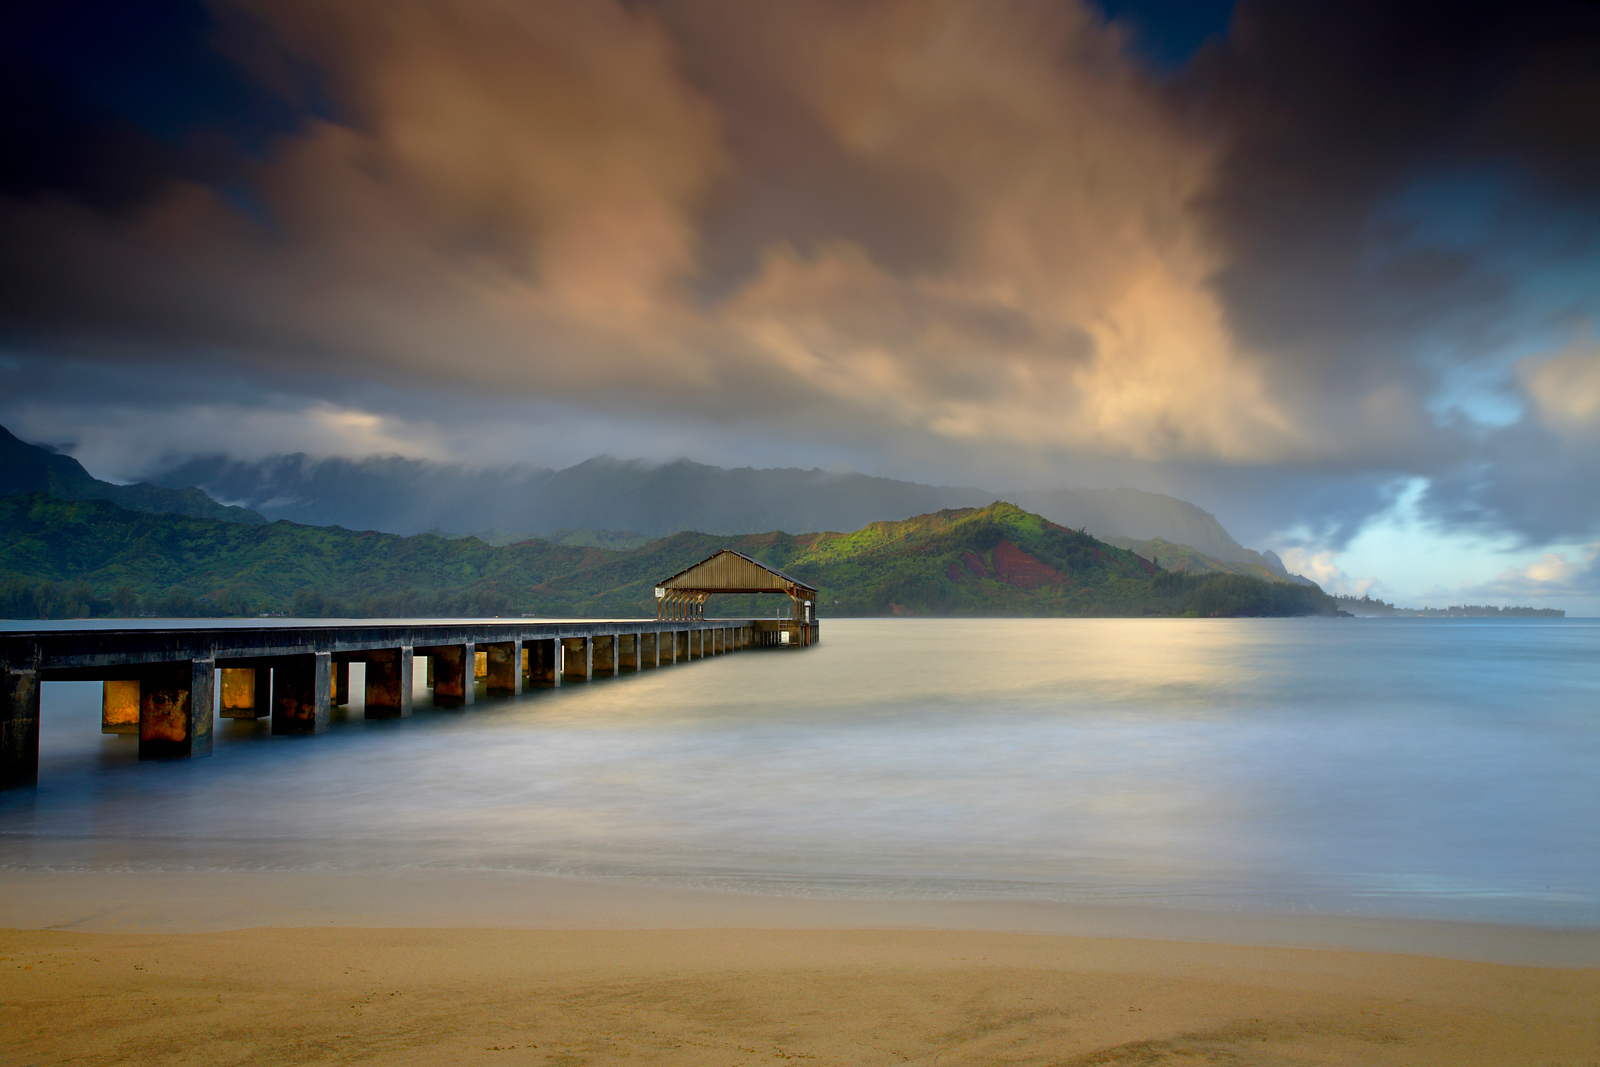 """The Hanalei Pier points directly towards the mountains often referred to as """"Bali Hai.""""   It refers to a song written by Richard Rodgers and Oscar Hammerstein II from the musical South Pacific. This area resembles the island of Tioman, which is the original Bali Hai.   With the sun rising behind the camera, openings in the clouds allowed the light to filter into the clouds and illuminate the mountains on the opposite side of Hanalei Bay.  Within 10 minutes the rain came in and this low warm light was gone for the day, replaced later by the bright light of mid-day.   I used a long exposure to show the motion in the clouds.  Also, the long exposure time smoothed out the water and simplified the image.  That enhanced the effect of light hitting the posts of the pier."""